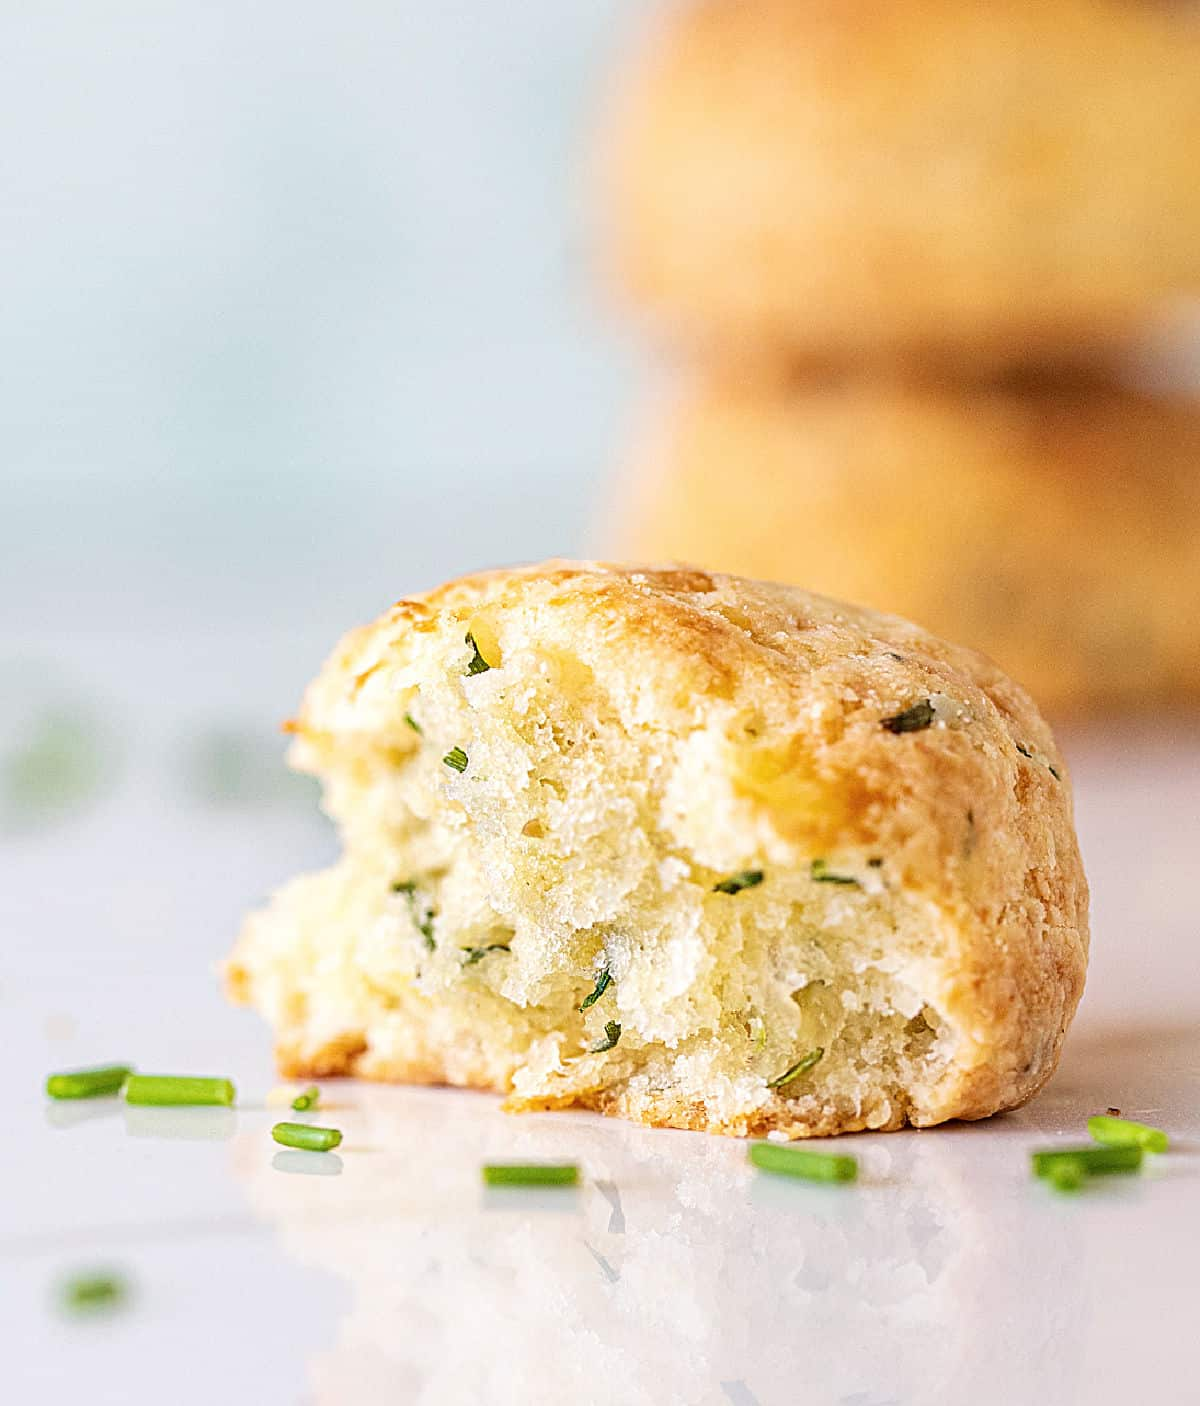 Half a scone on white surface, chopped chives around